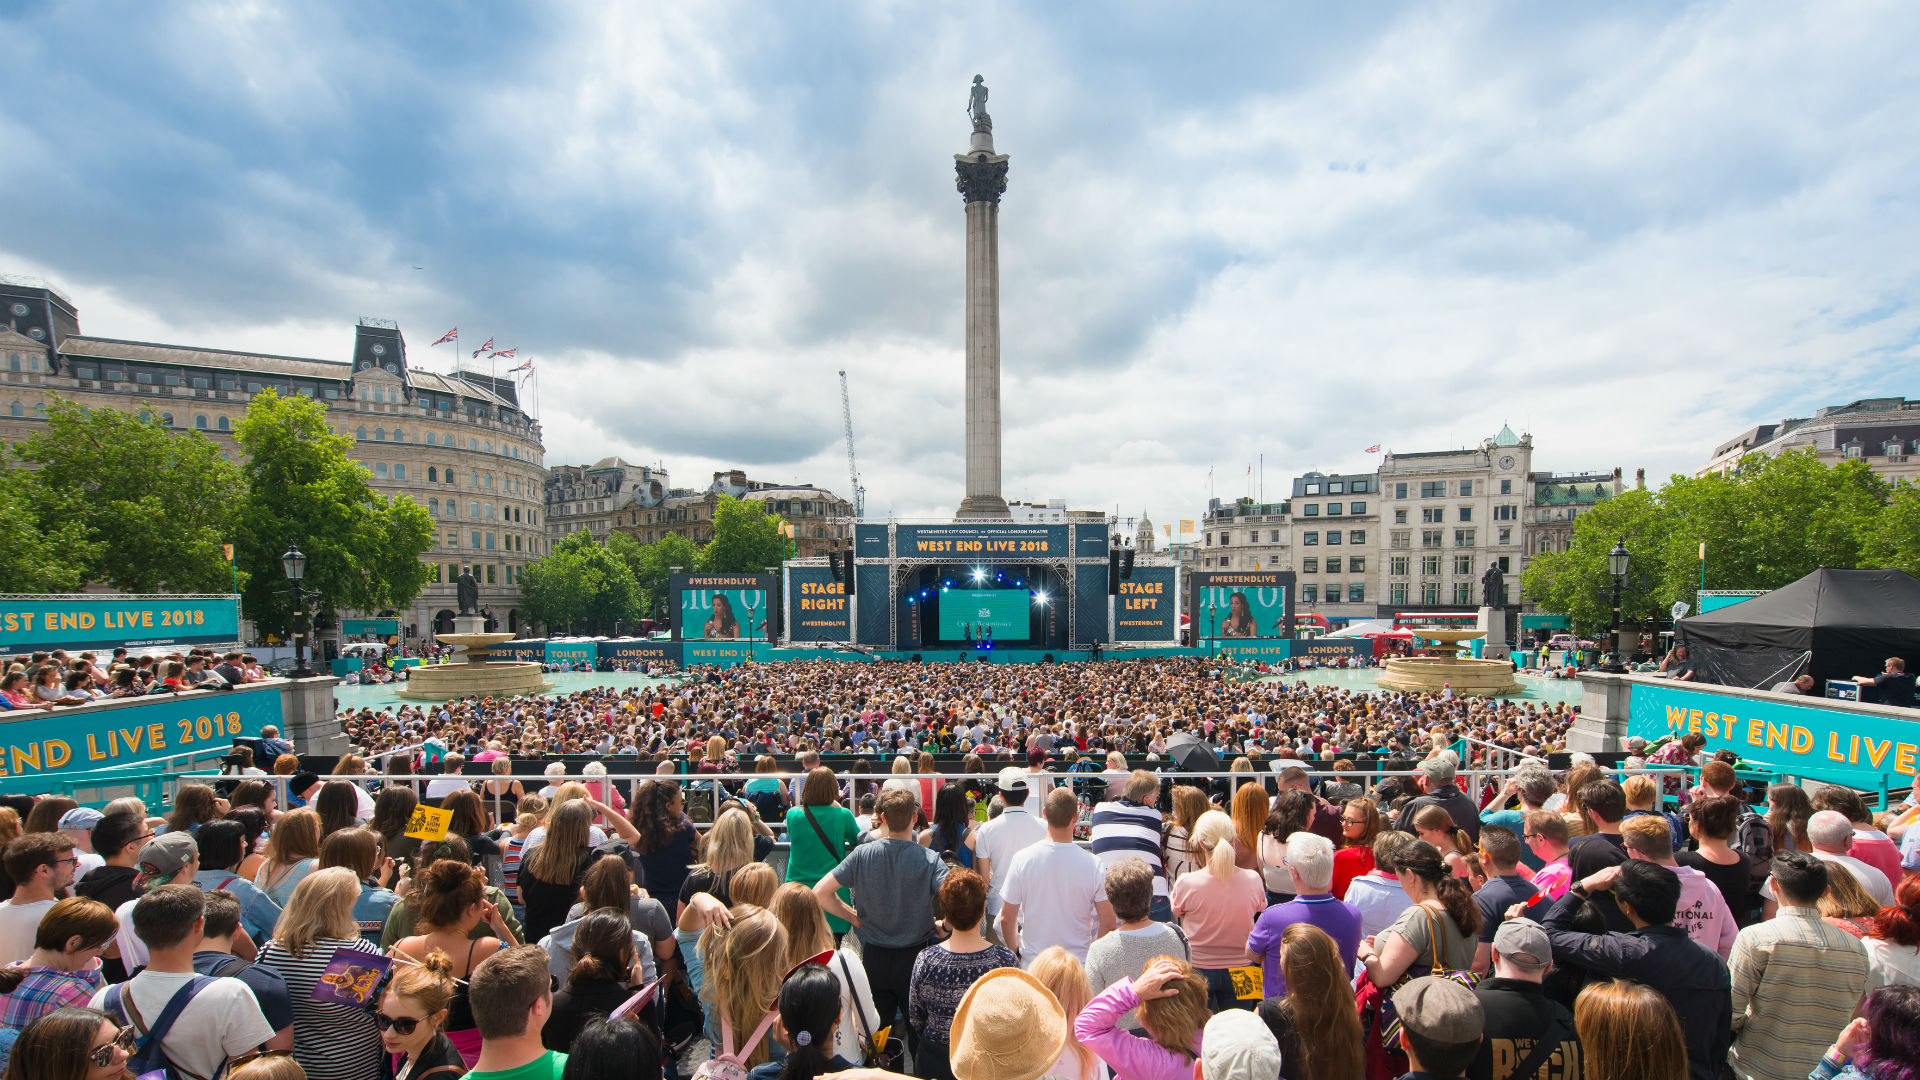 A large crowd enjoys free performances during West End LIVE